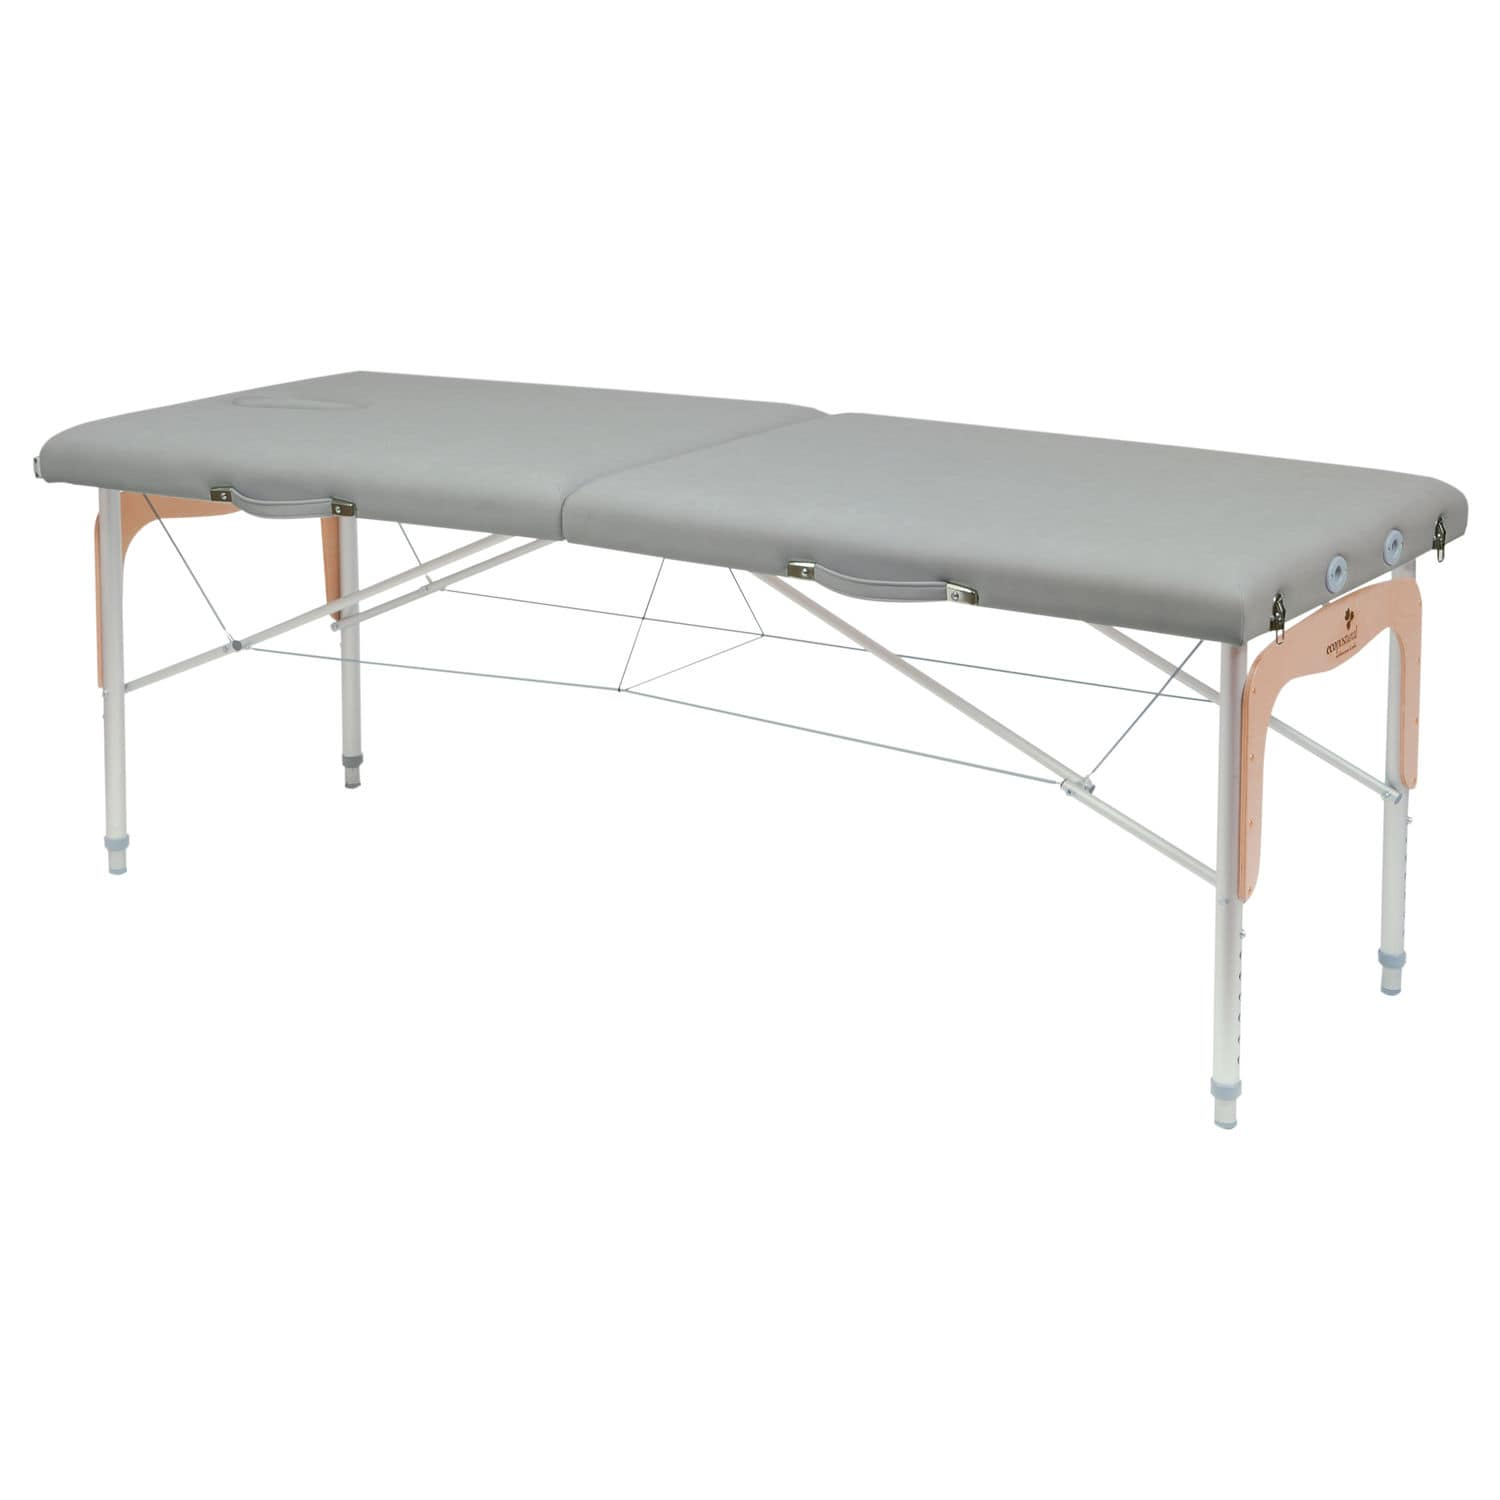 Manual massage table portable height adjustable 2 section